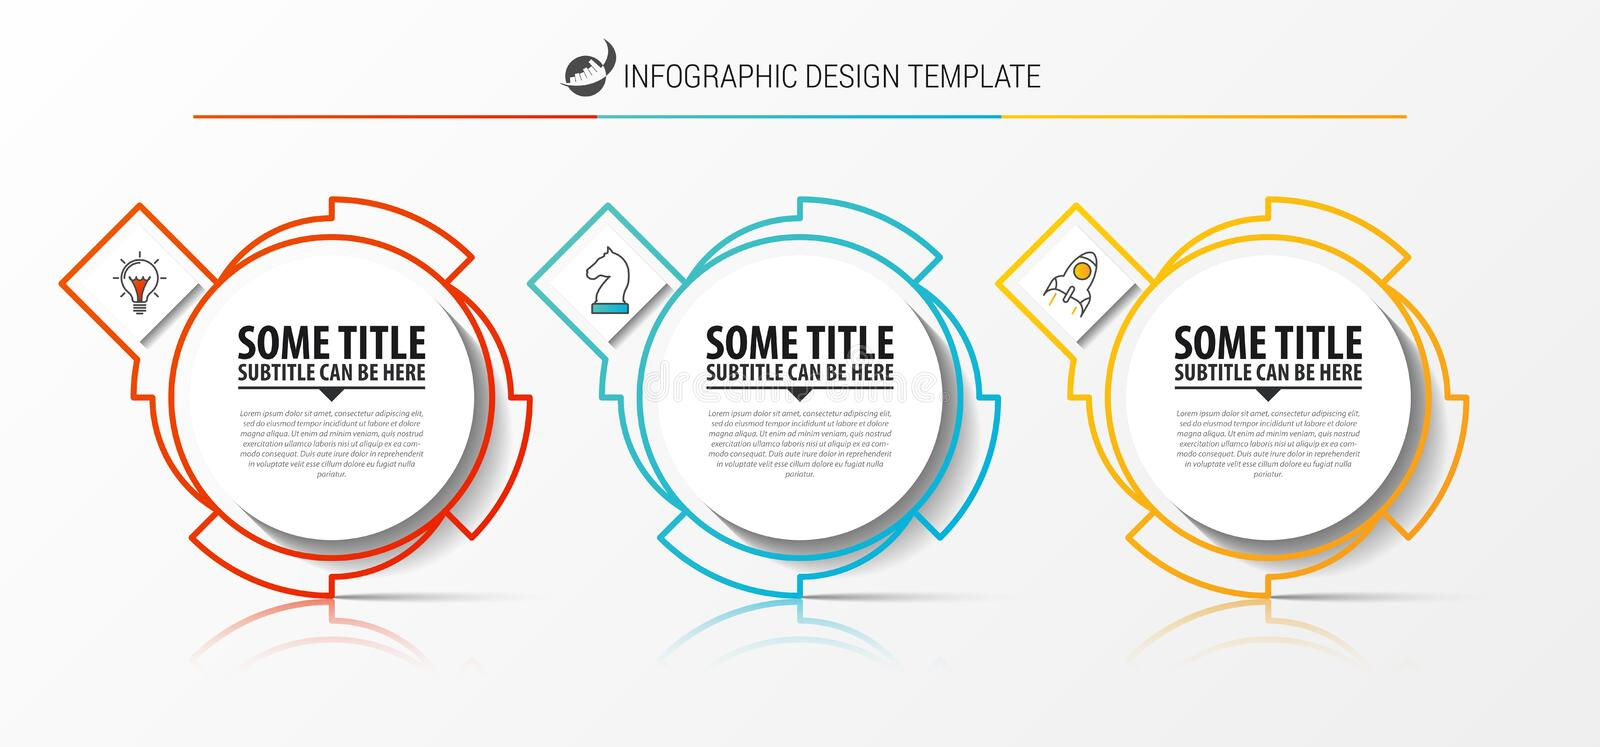 Infographic design template. Creative concept with 3 steps royalty free illustration